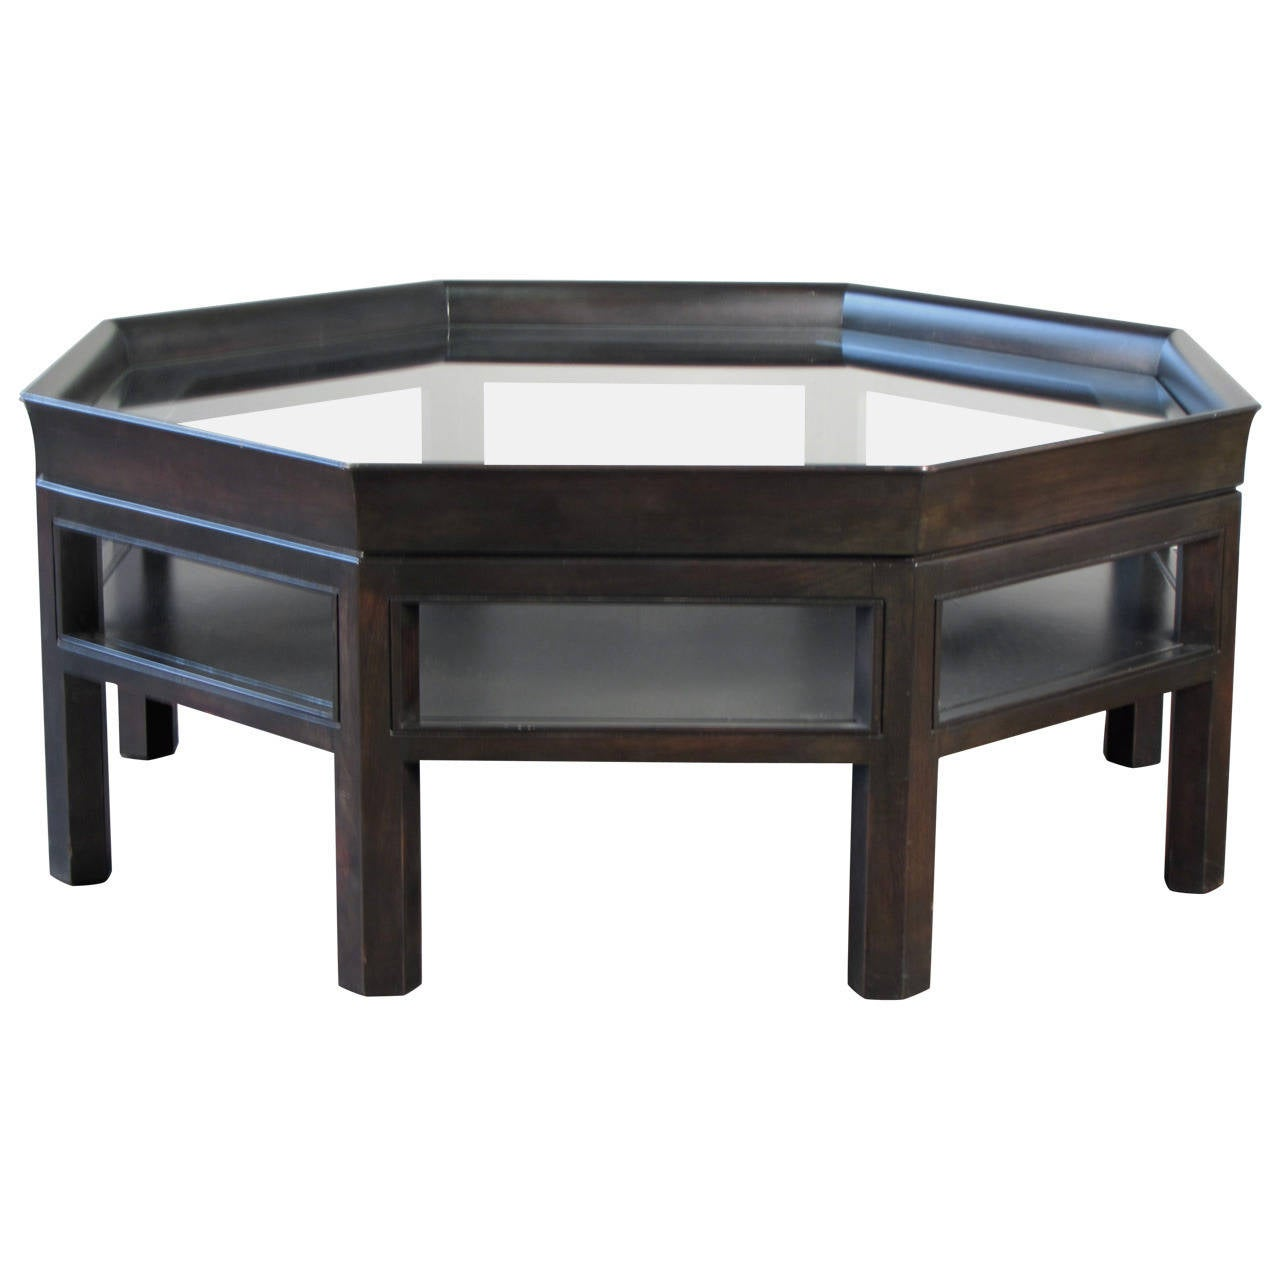 Octagonal coffee table by baker furniture at 1stdibs for Octagon coffee table